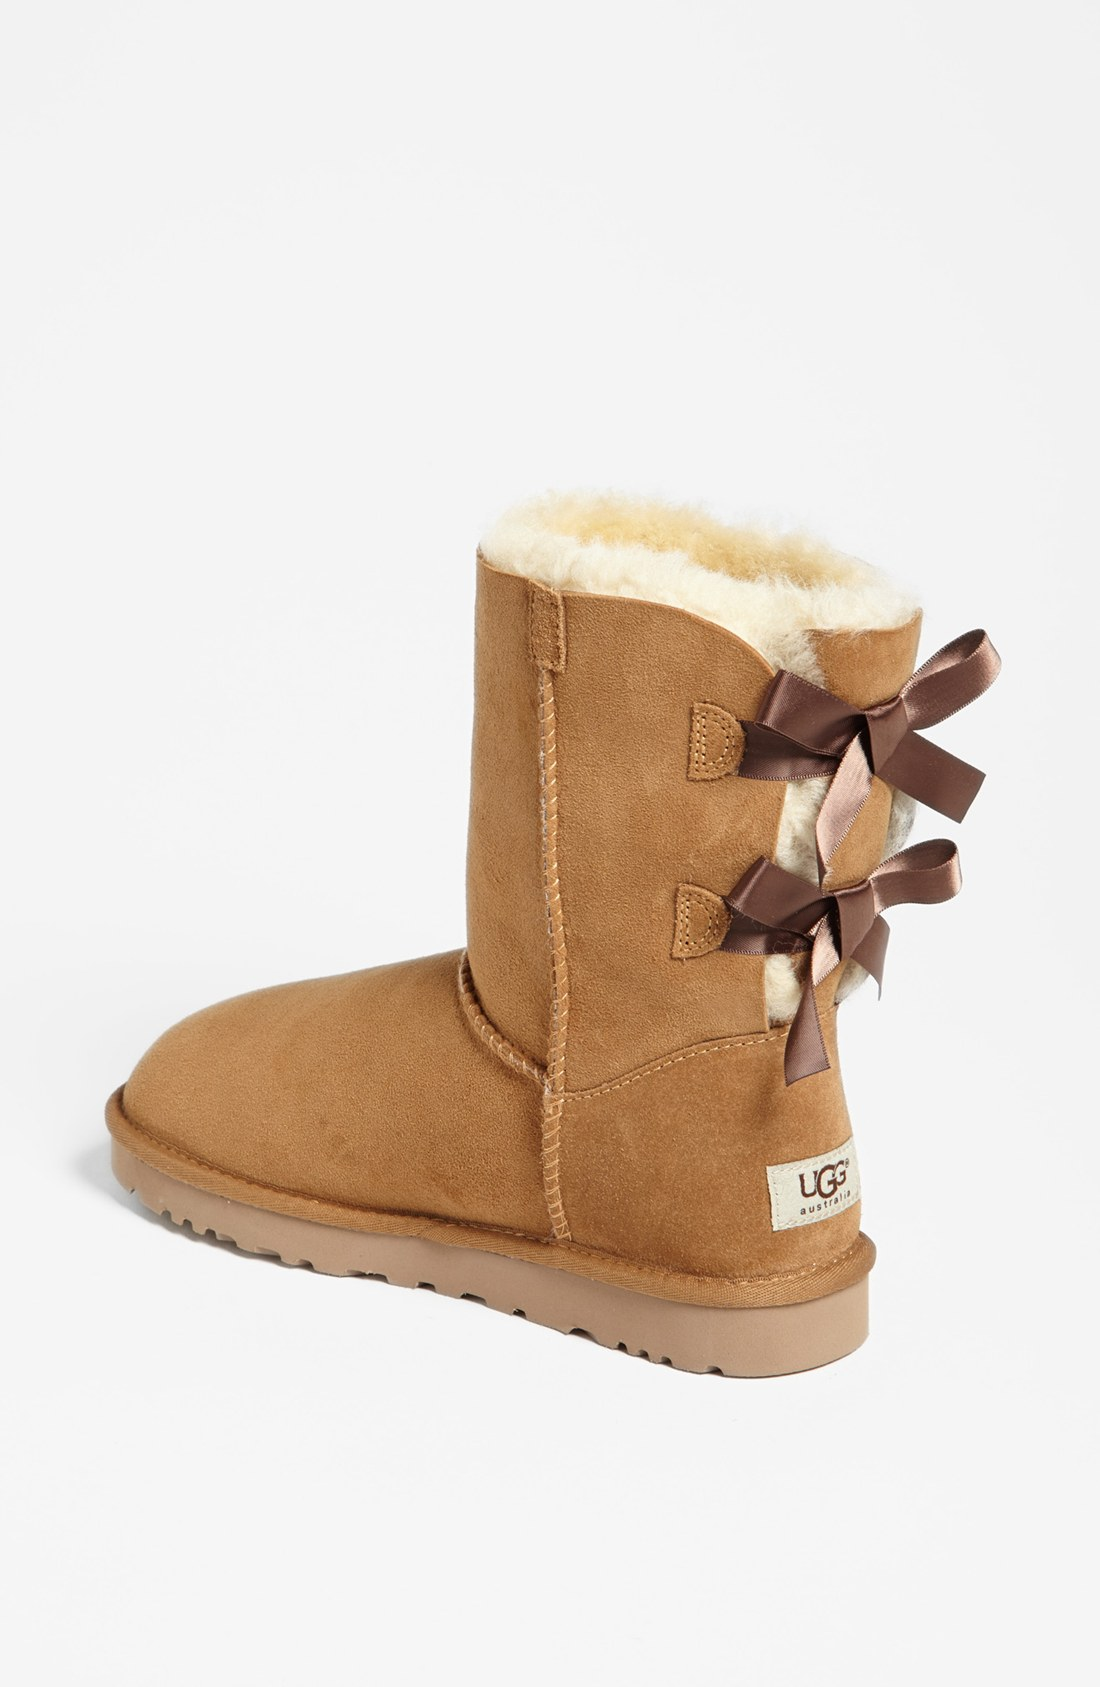 a6181e707dc Ugg Bailey Bow Boots Womens Style : 1002954